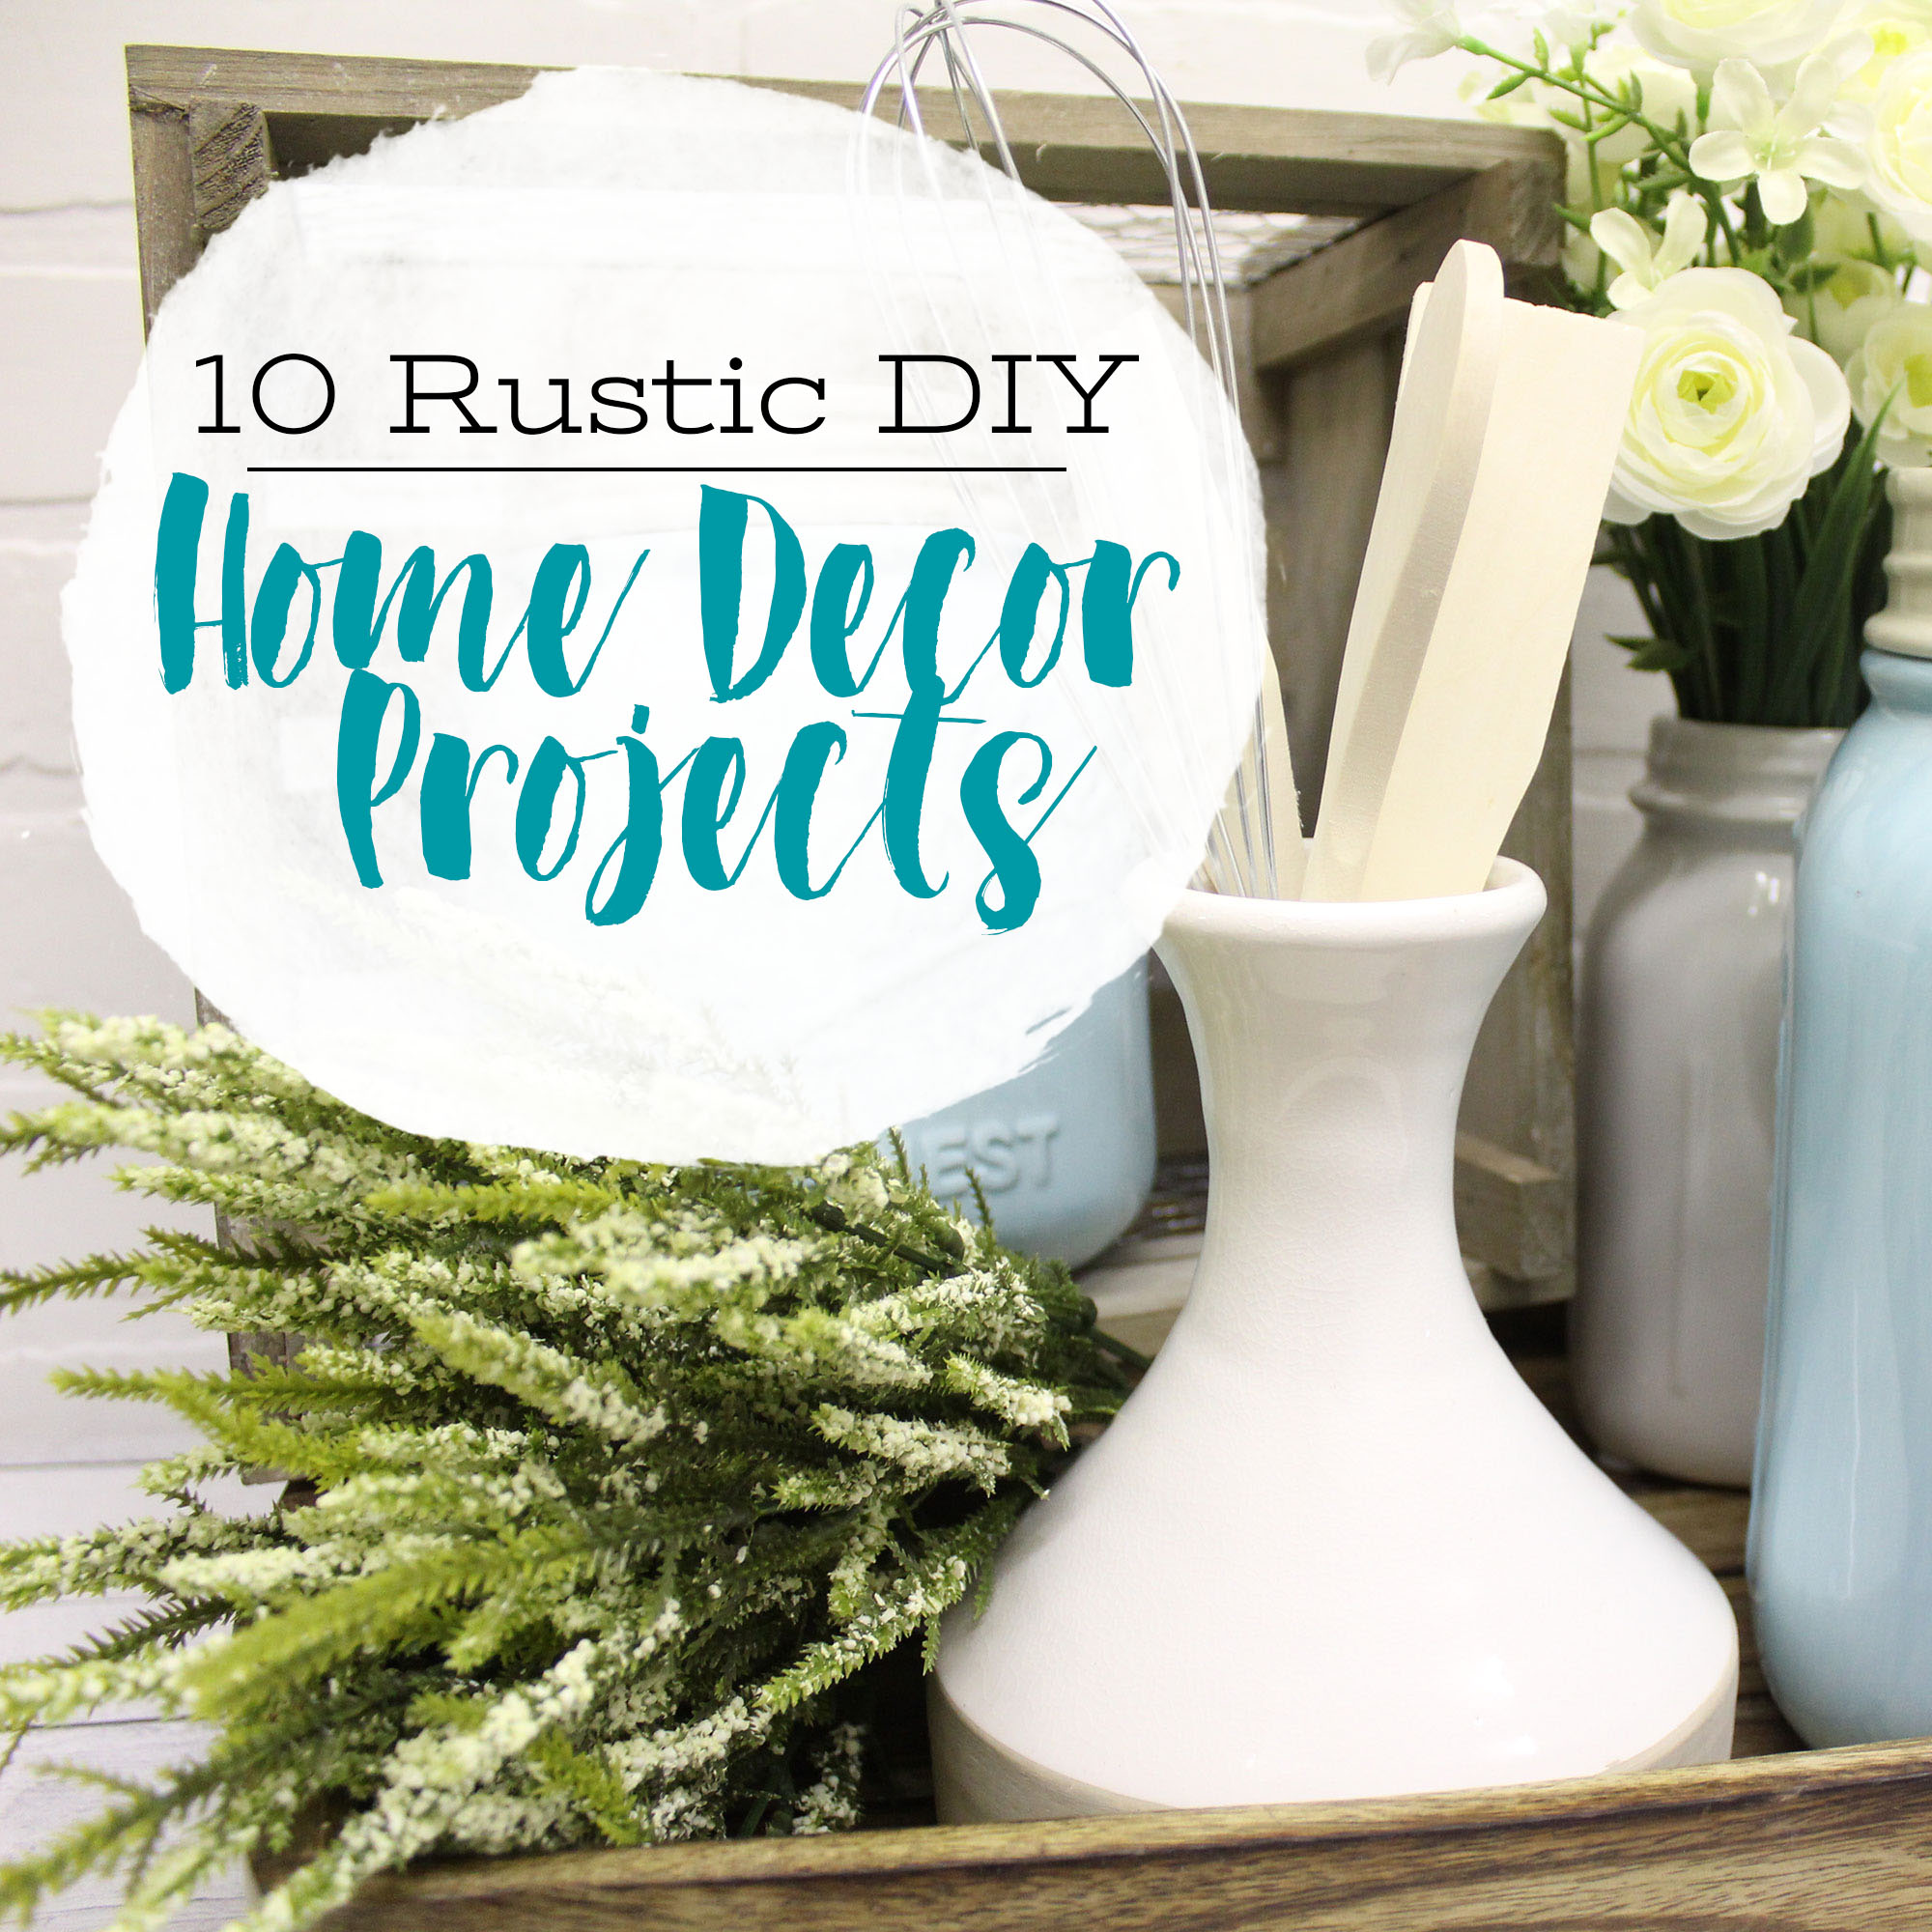 10 Rustic DIY Home Décor Projects We Know You'll Love